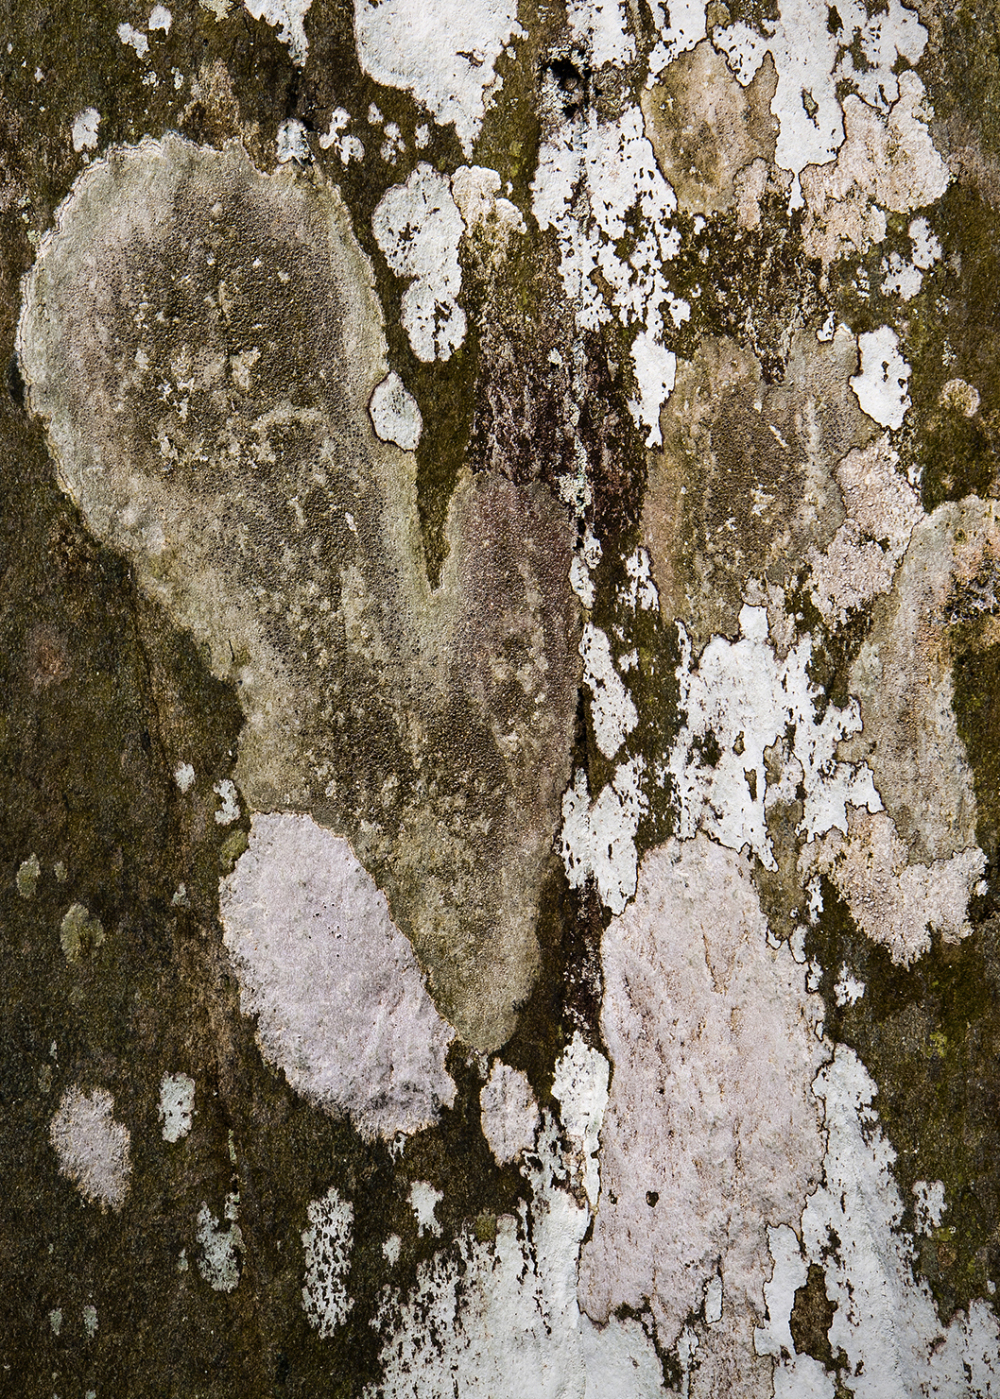 Lichens on a rock face.